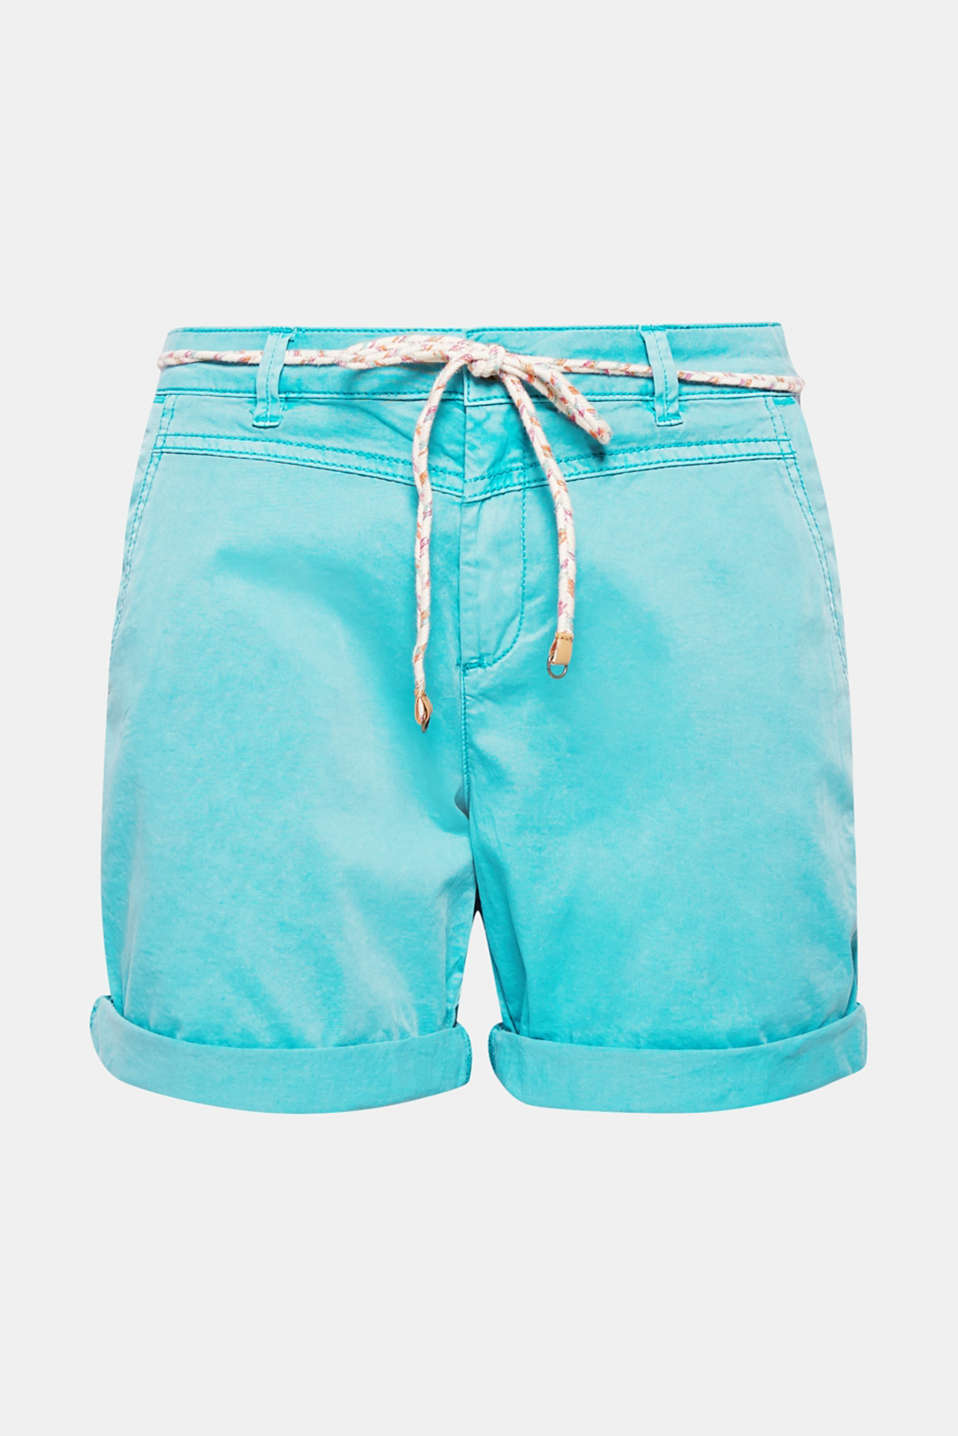 Stylish summer and leisure basic: these shorts get their casual look from to the soft stretch cotton fabric and the decorative cord belt!